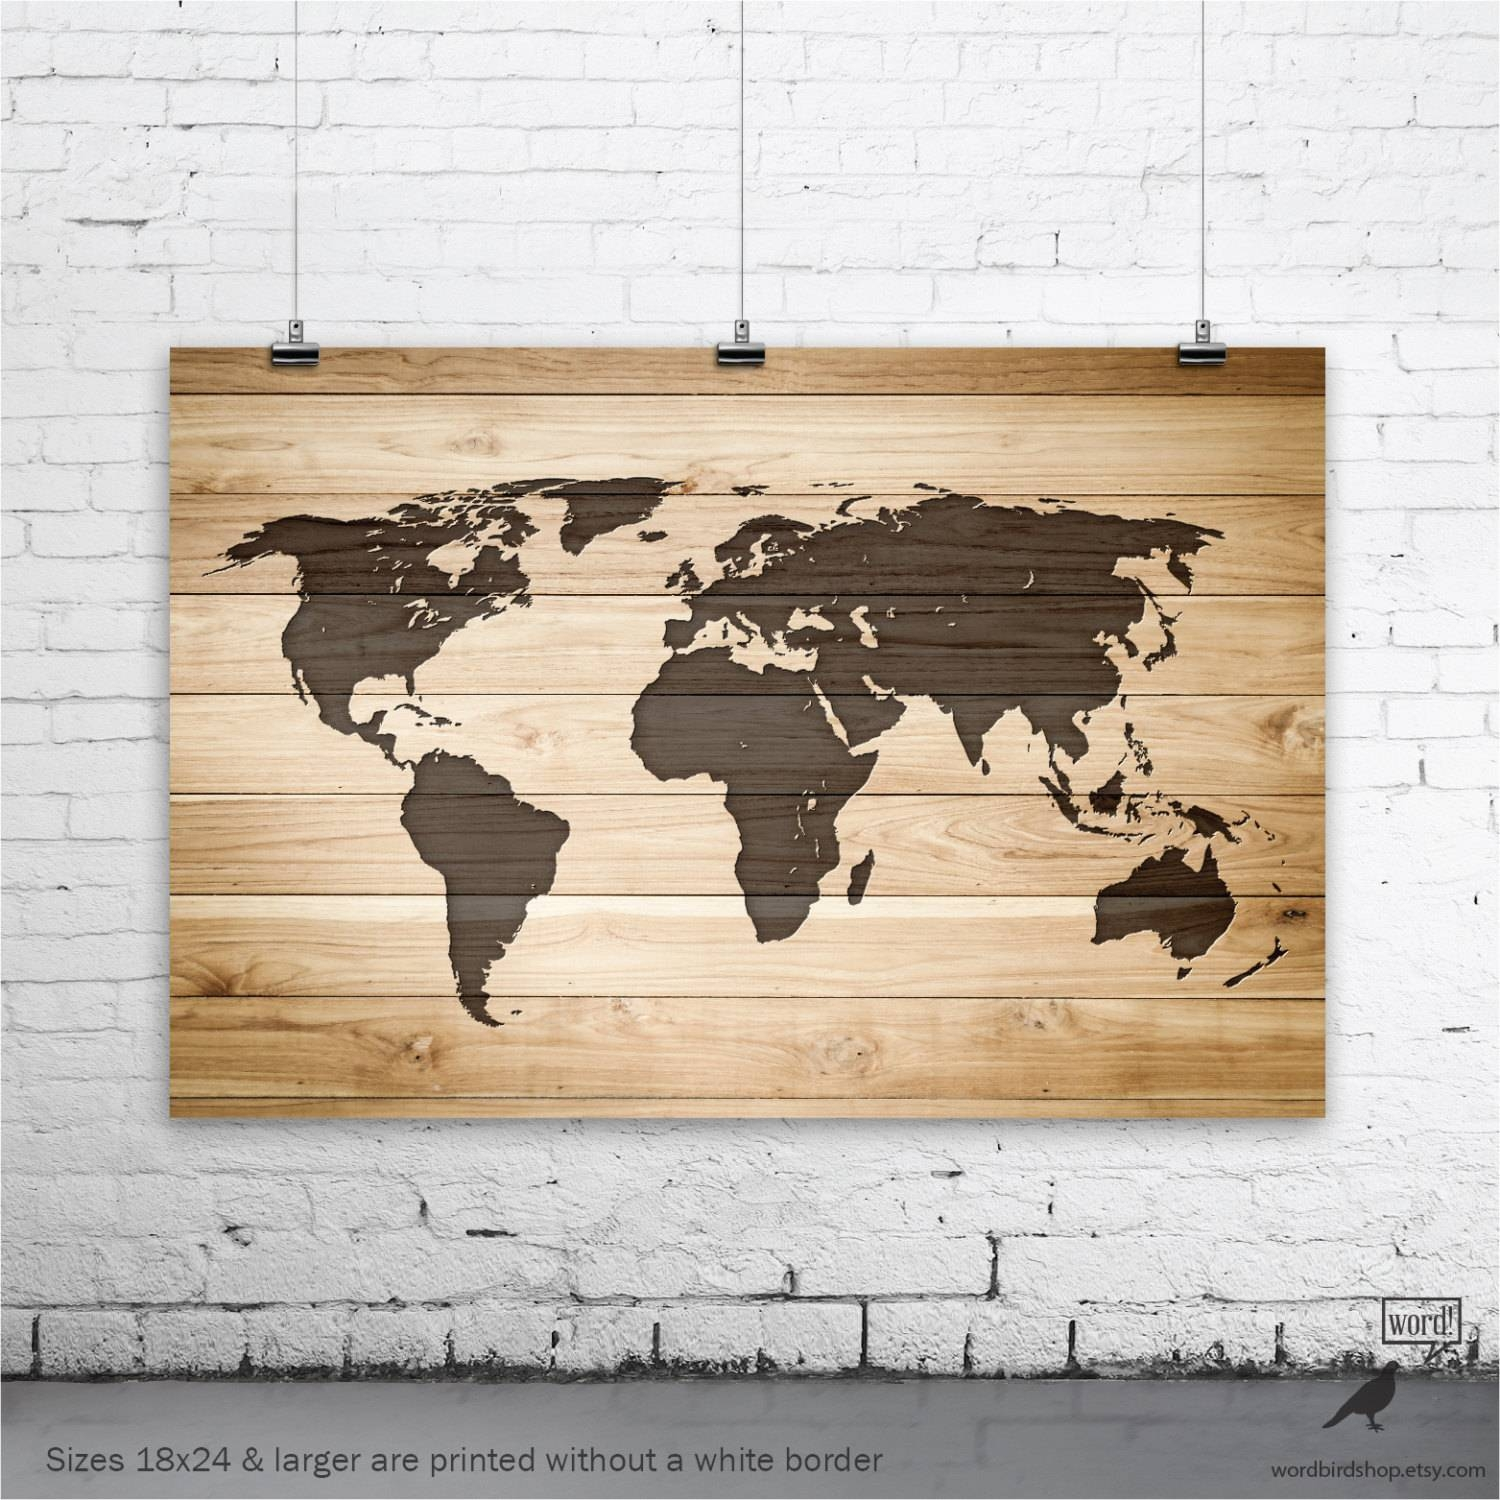 Rustic Wood Large World Map Poster Wood Wall Art Print Gifts Within Best And Newest World Map Wood Wall Art (Gallery 7 of 20)